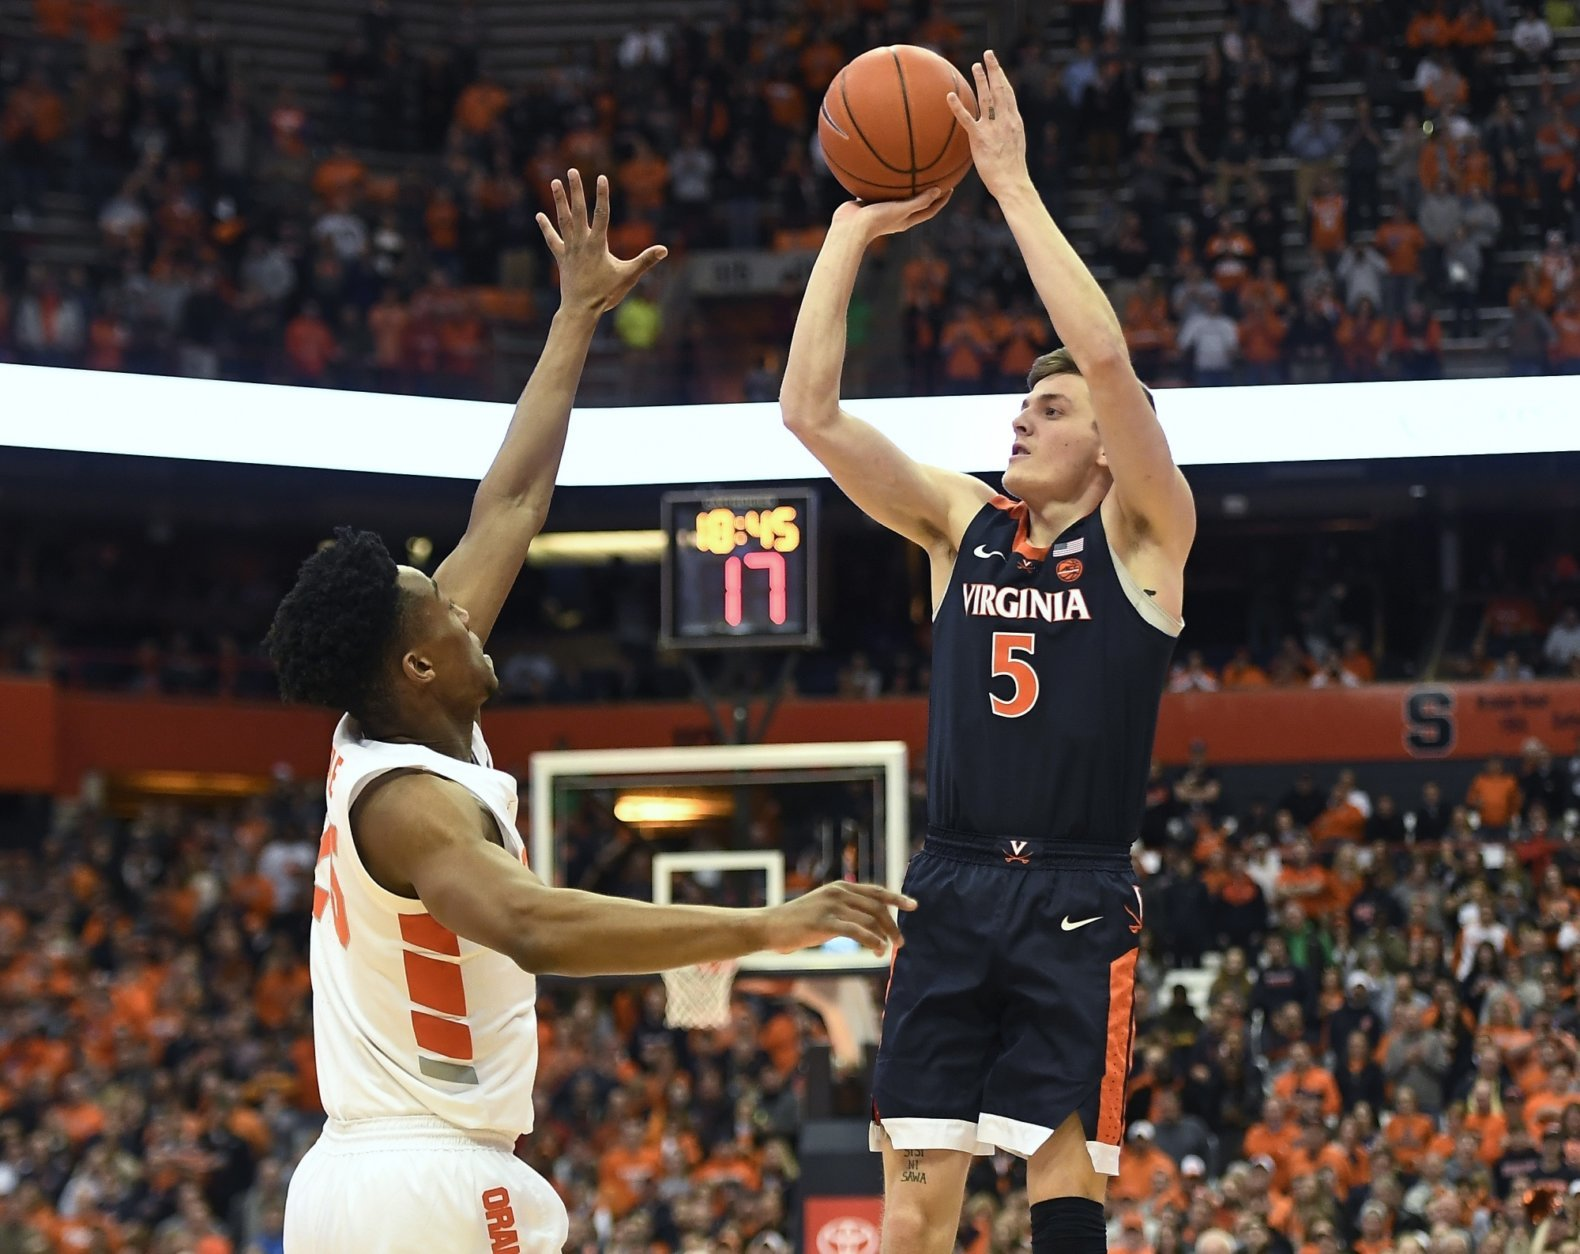 Virginia guard Kyle Guy, right, shoots over Syracuse guard Tyus Battle during the first half of an NCAA college basketball game in Syracuse, N.Y., Monday, March 4, 2019. (AP Photo/Adrian Kraus)